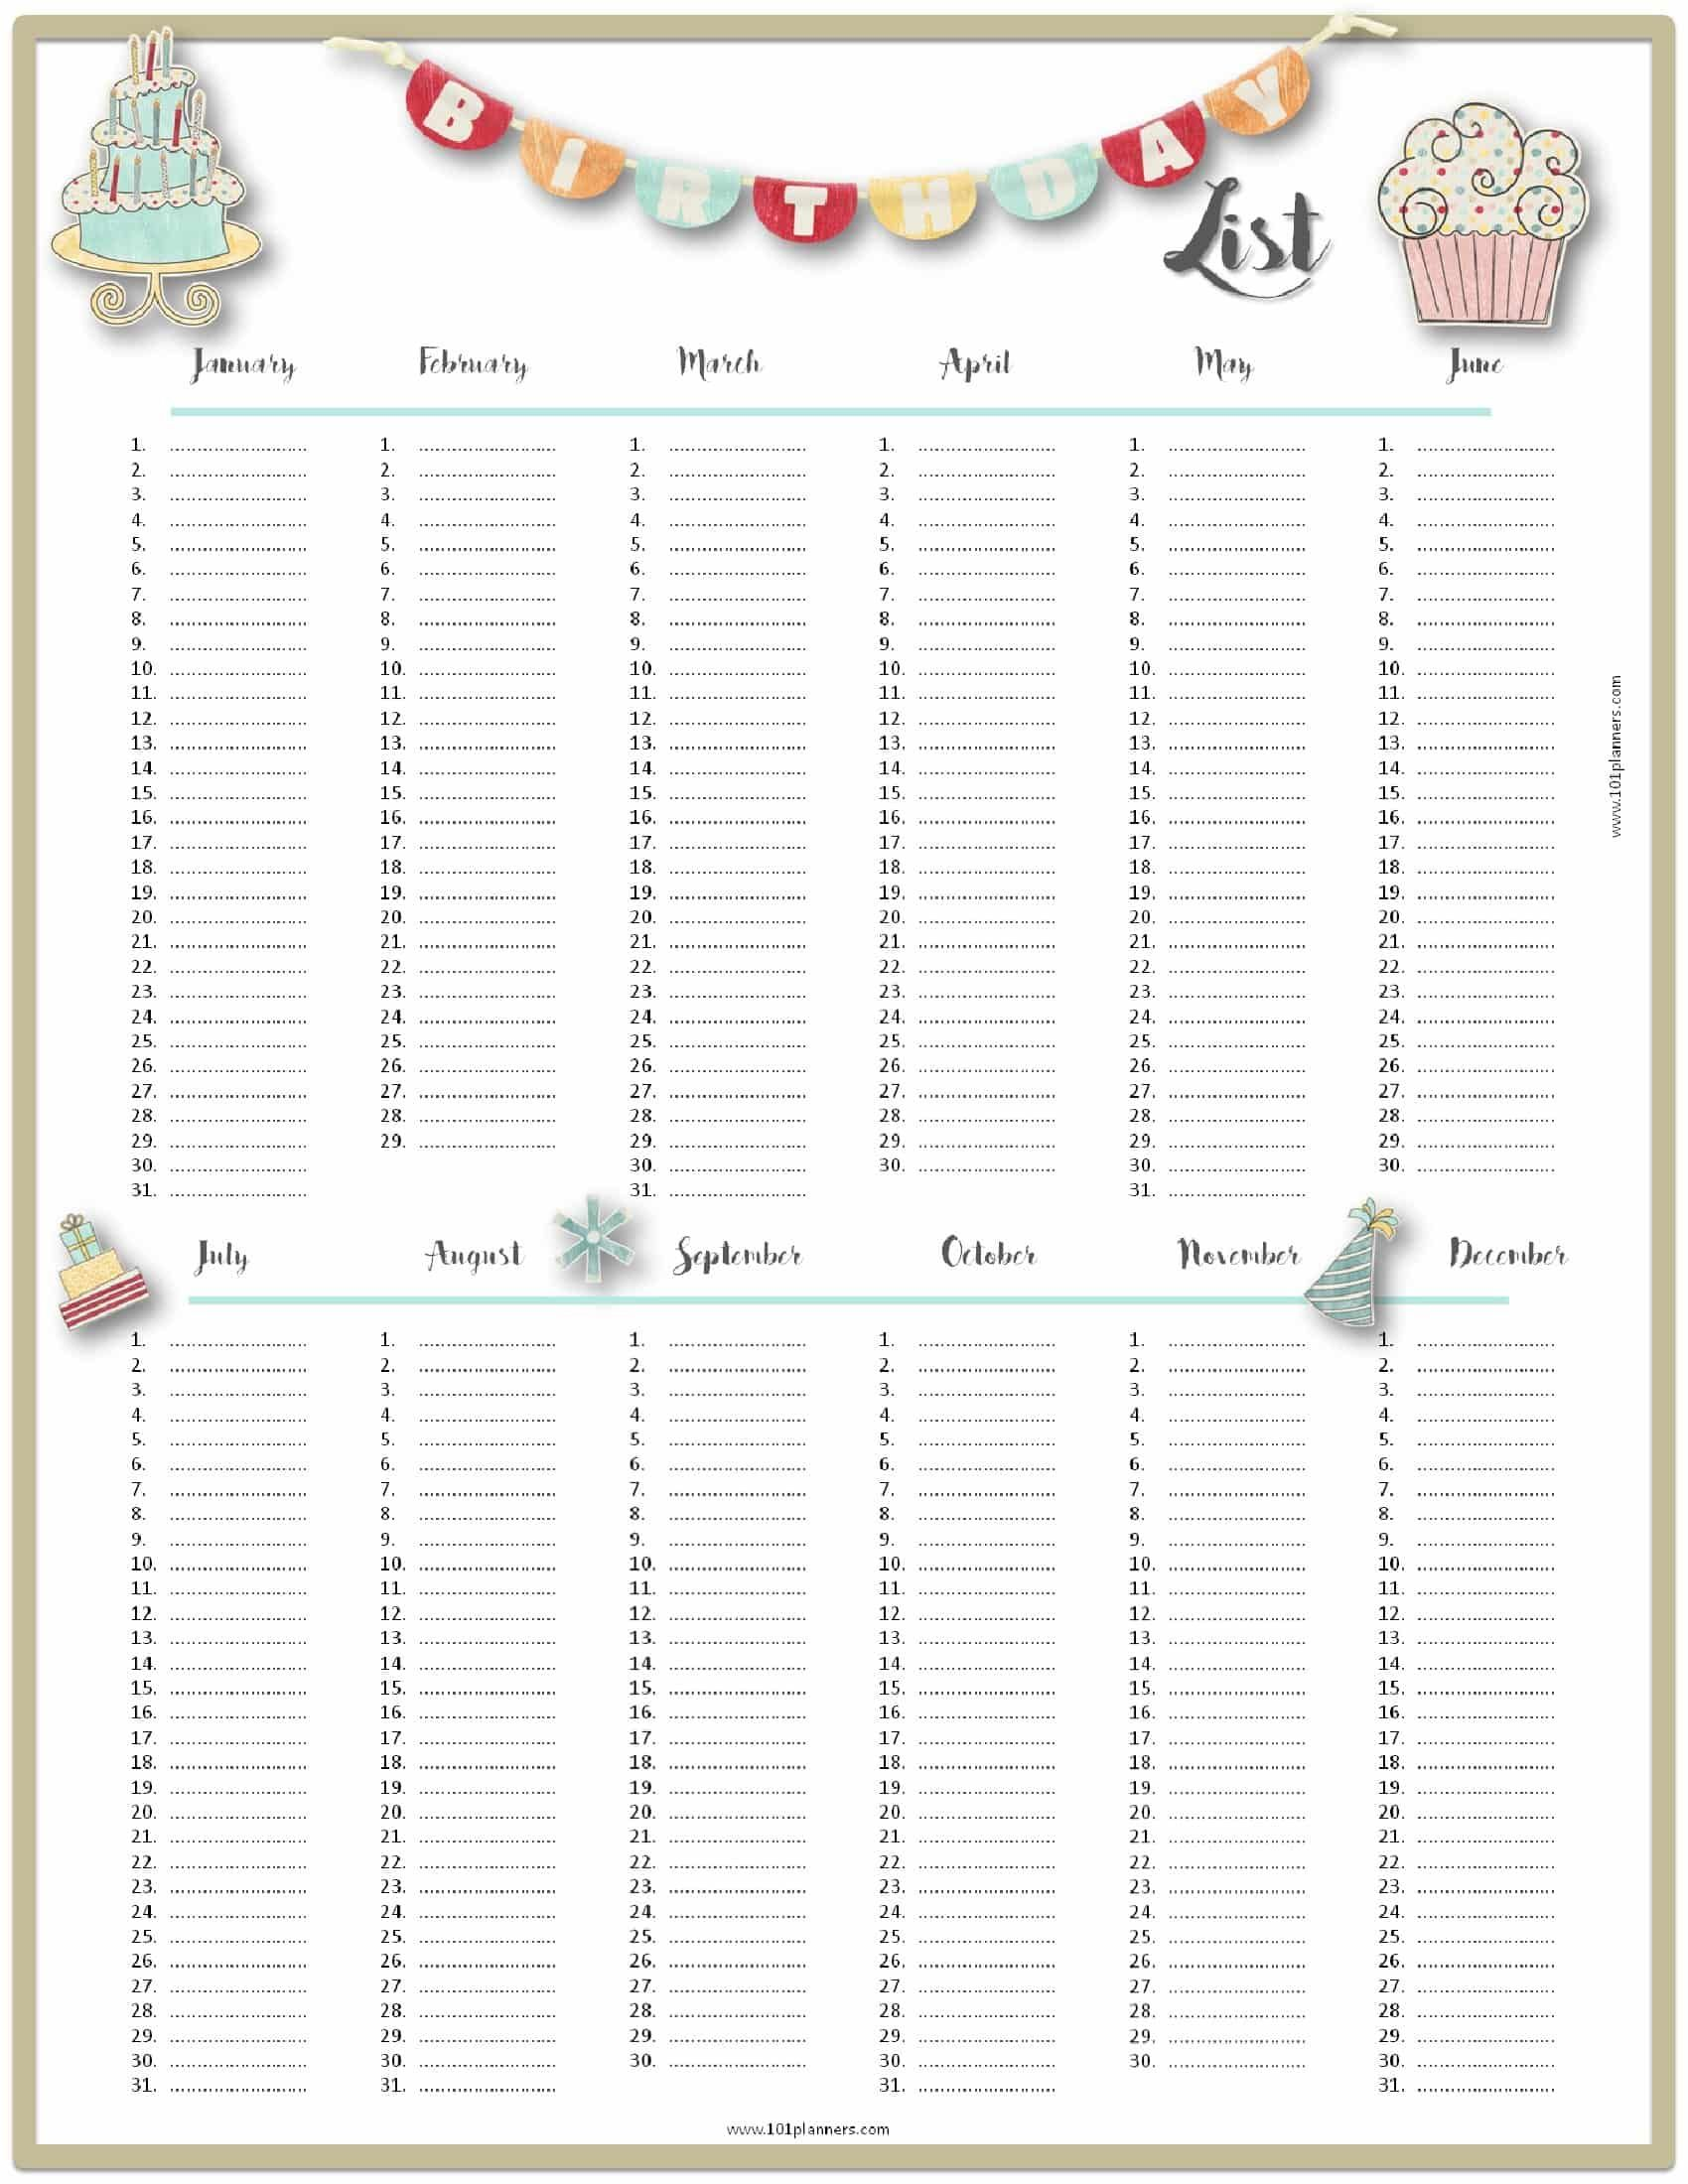 Free Birthday List Template Customize Then Print Birthday Calendar Birthday List Free Birthday Stuff Birthday wish list template printable